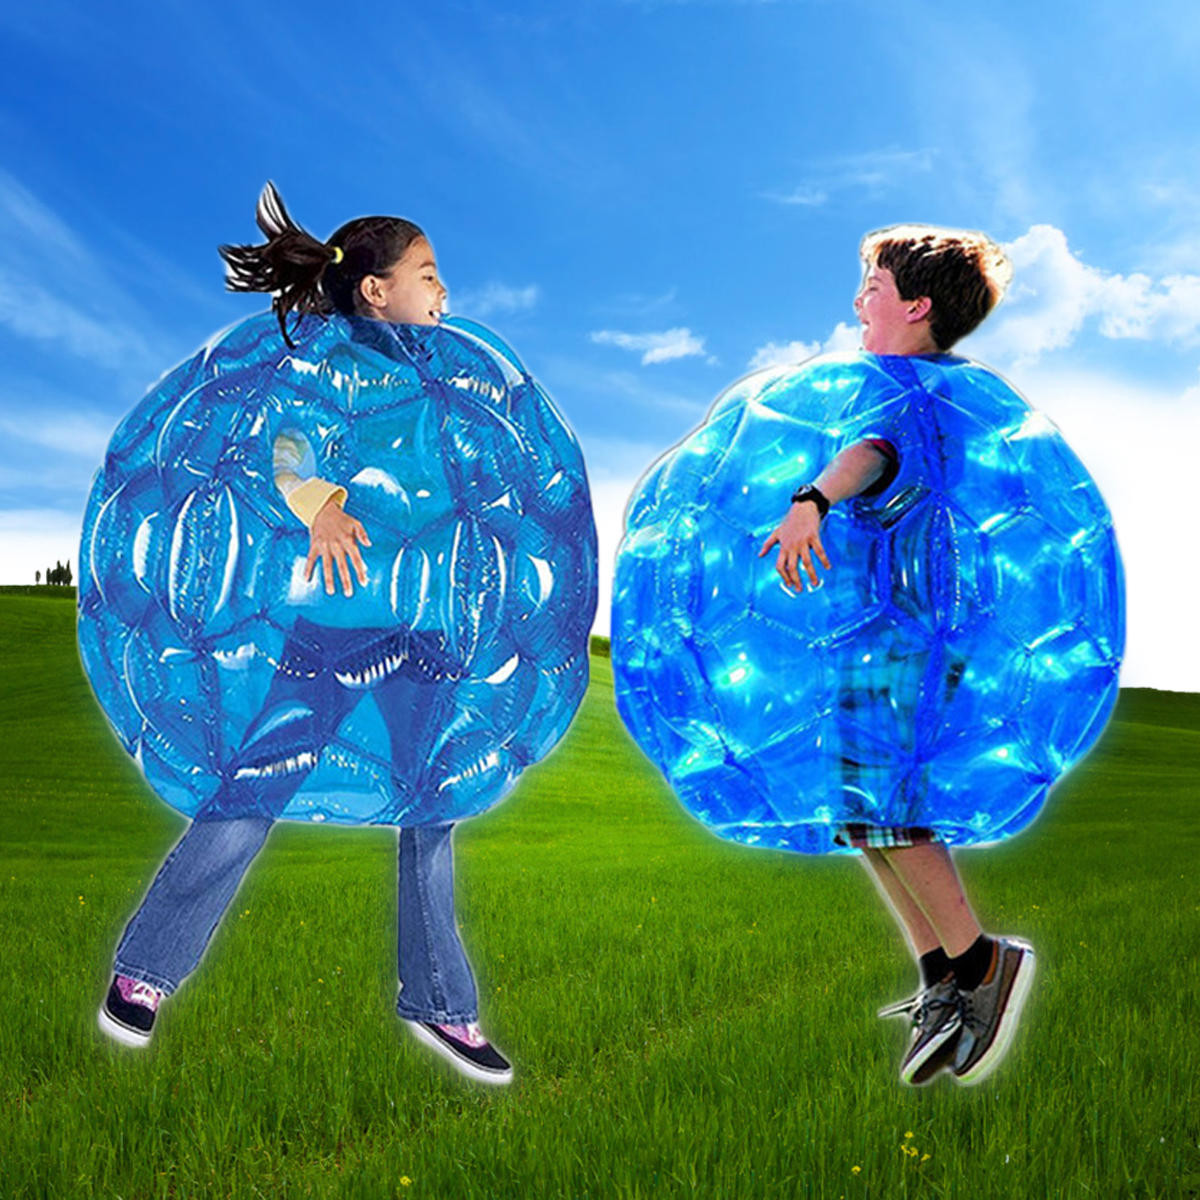 bubble ball vases bulk of 90cm pvc inflatable toy body bubble toy ball bumper ball football in 90cm pvc inflatable toy body bubble toy ball bumper ball football buddy kid outdoor play